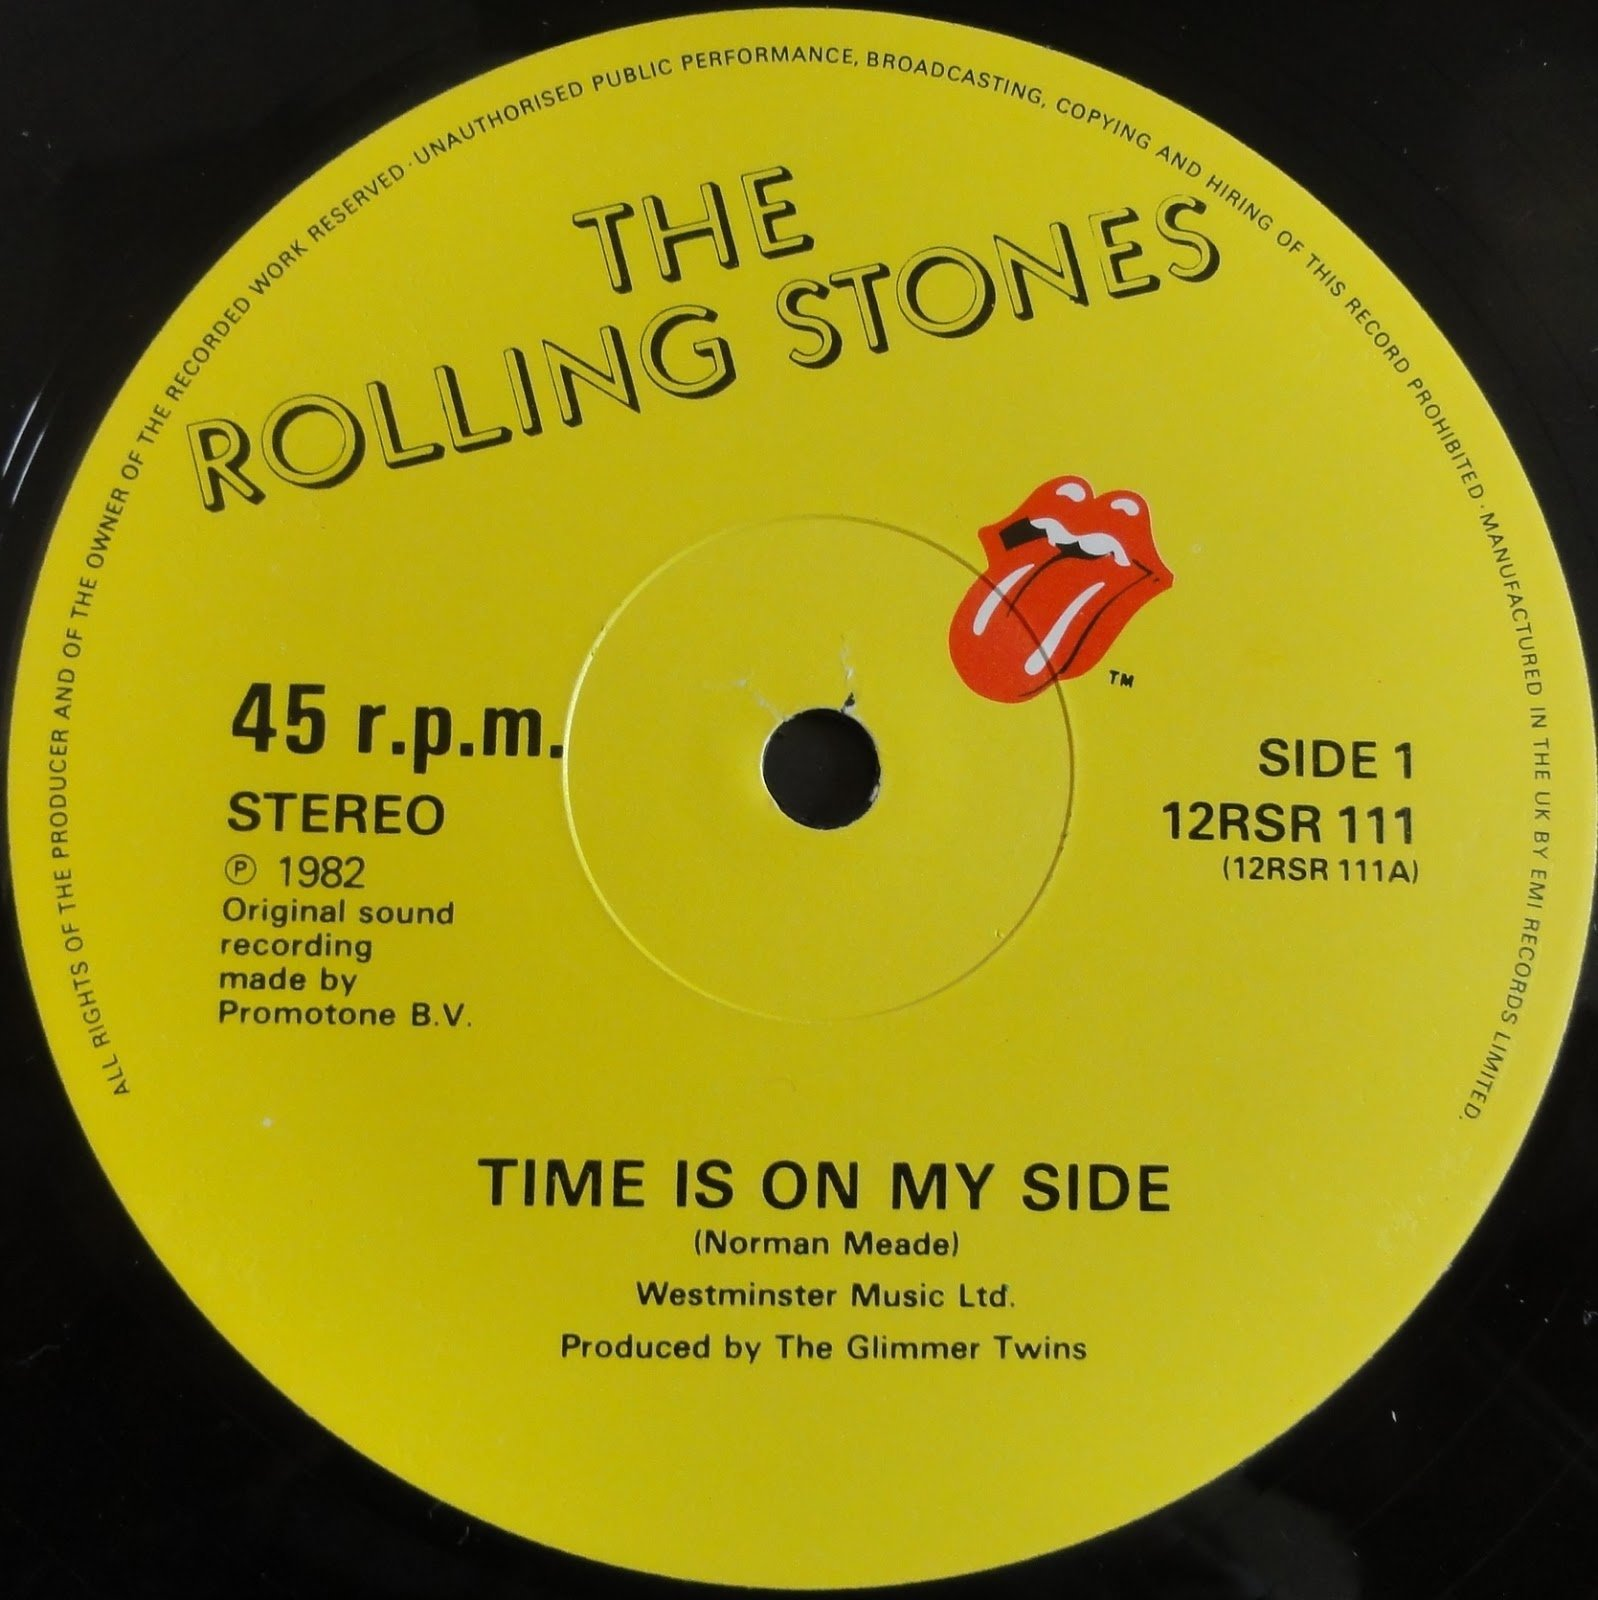 "The Rolling Stones - Time Is On My Side (Live) - EMI 12RSR 111 UK 12"" PS"